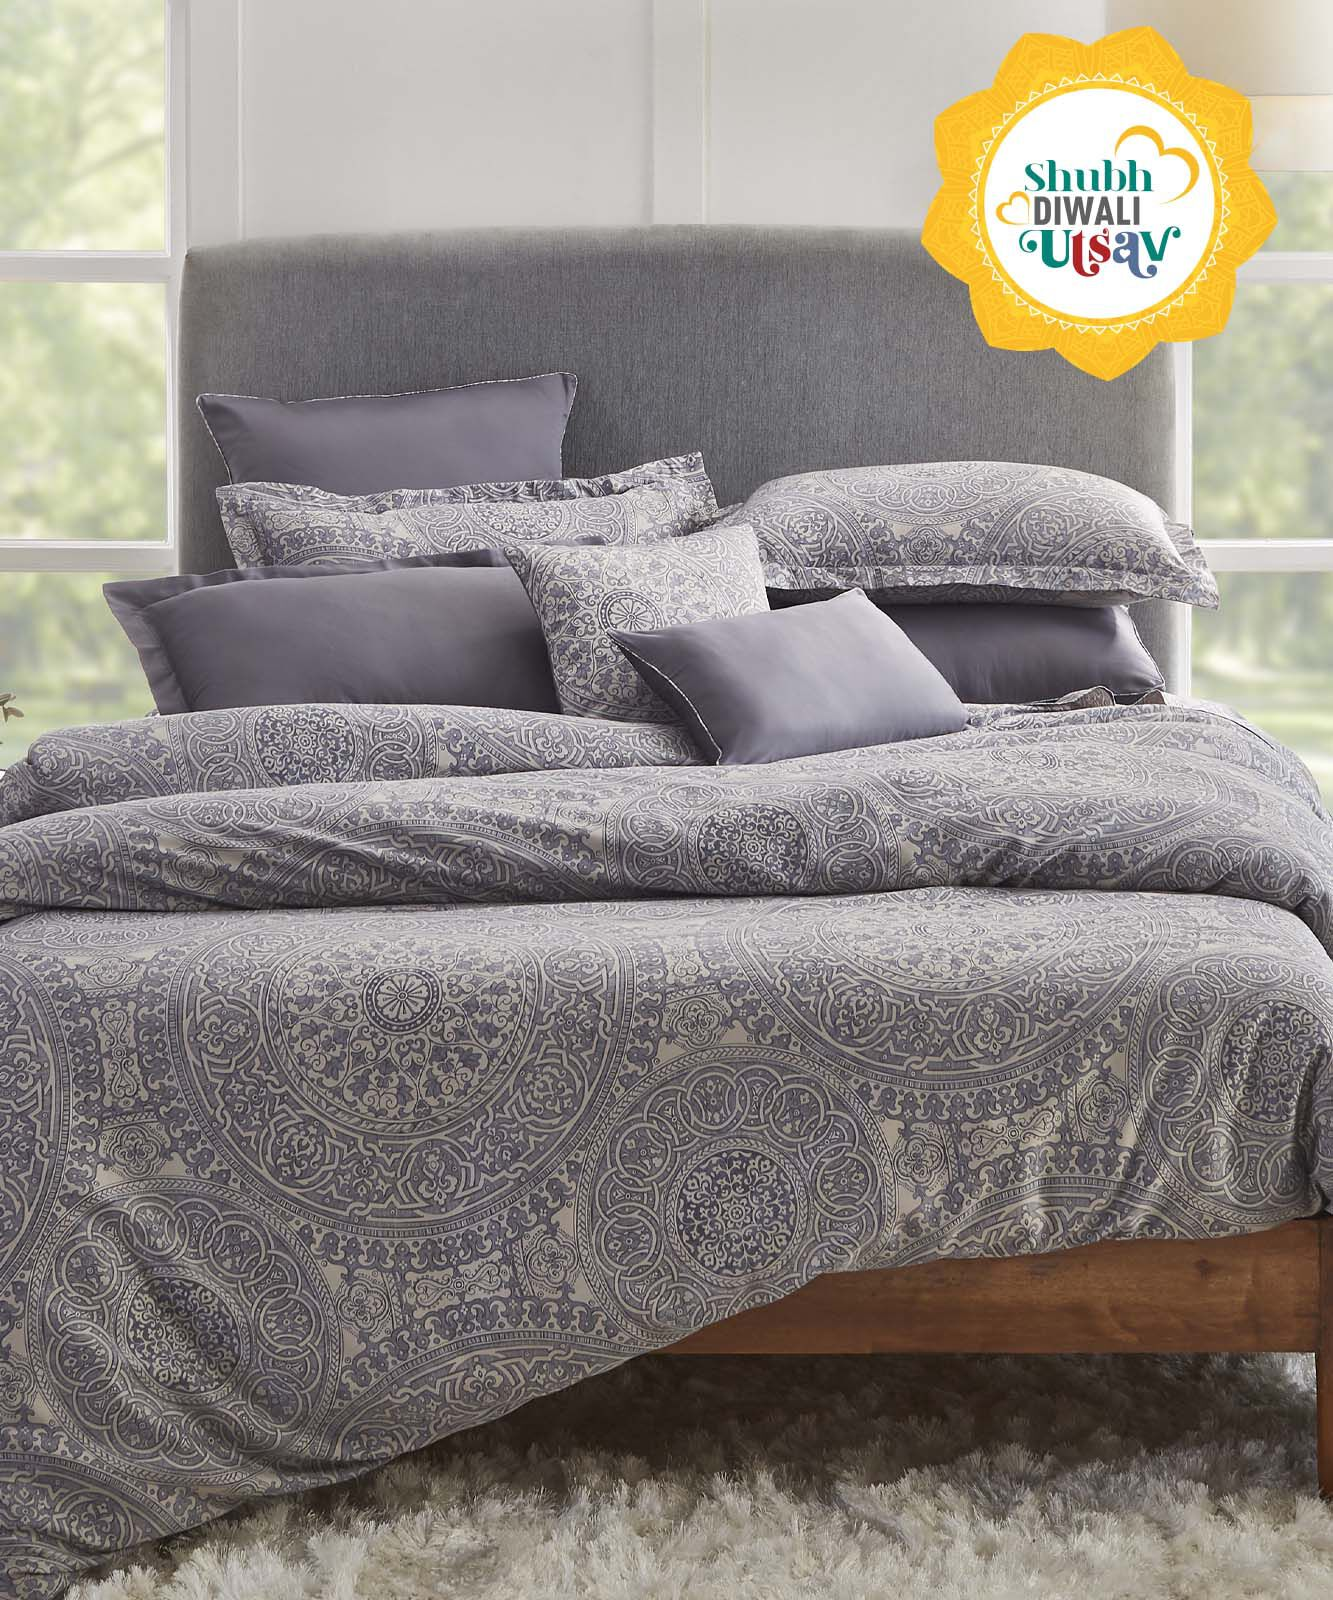 Bedsheets on Discount